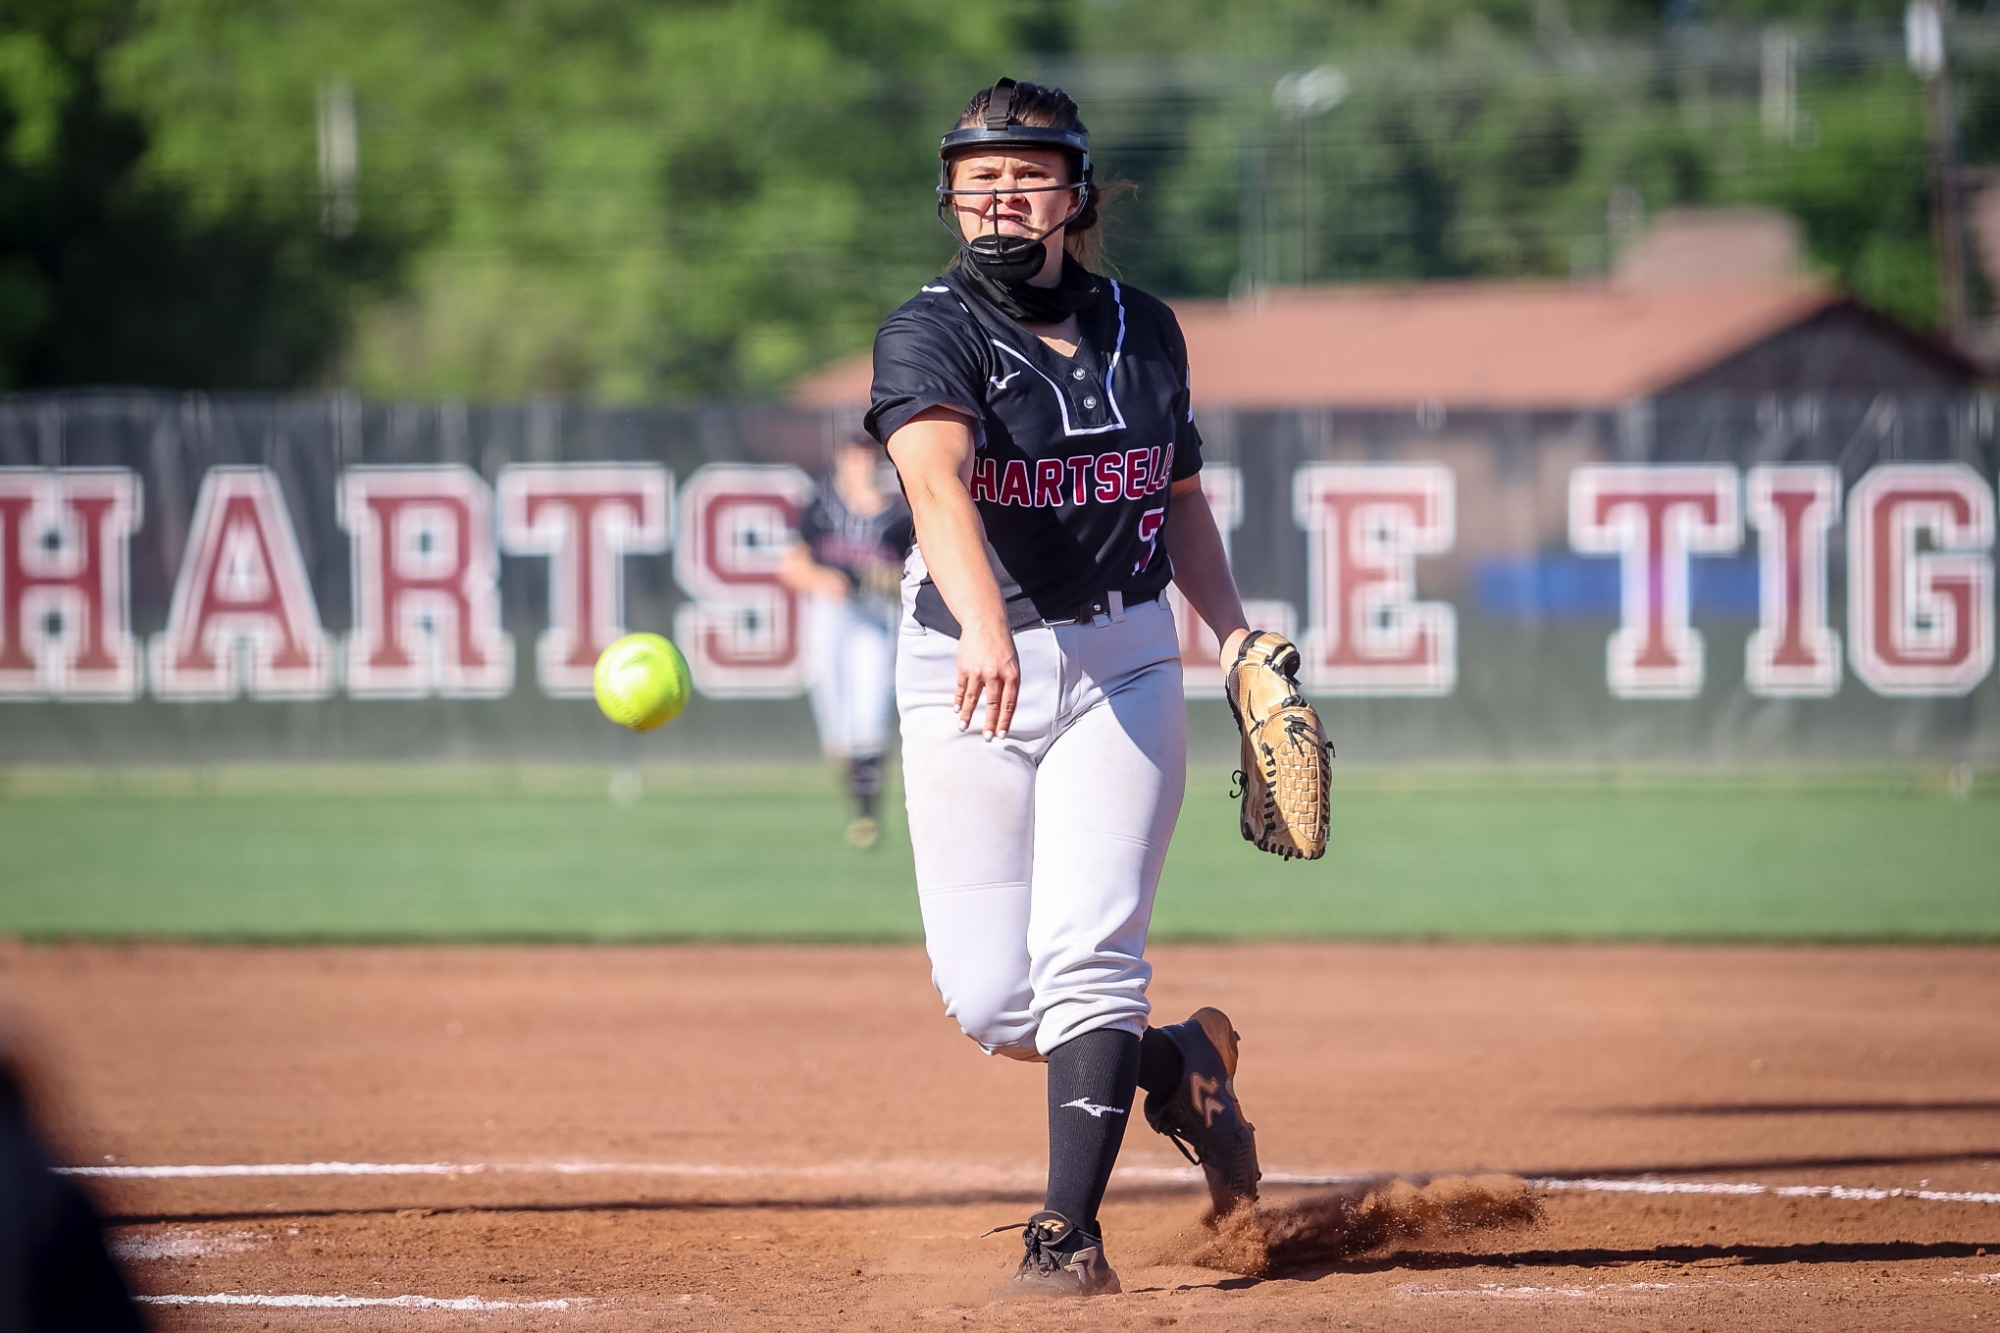 Smith's 15 strikeouts leads Lady Tigers to first round win